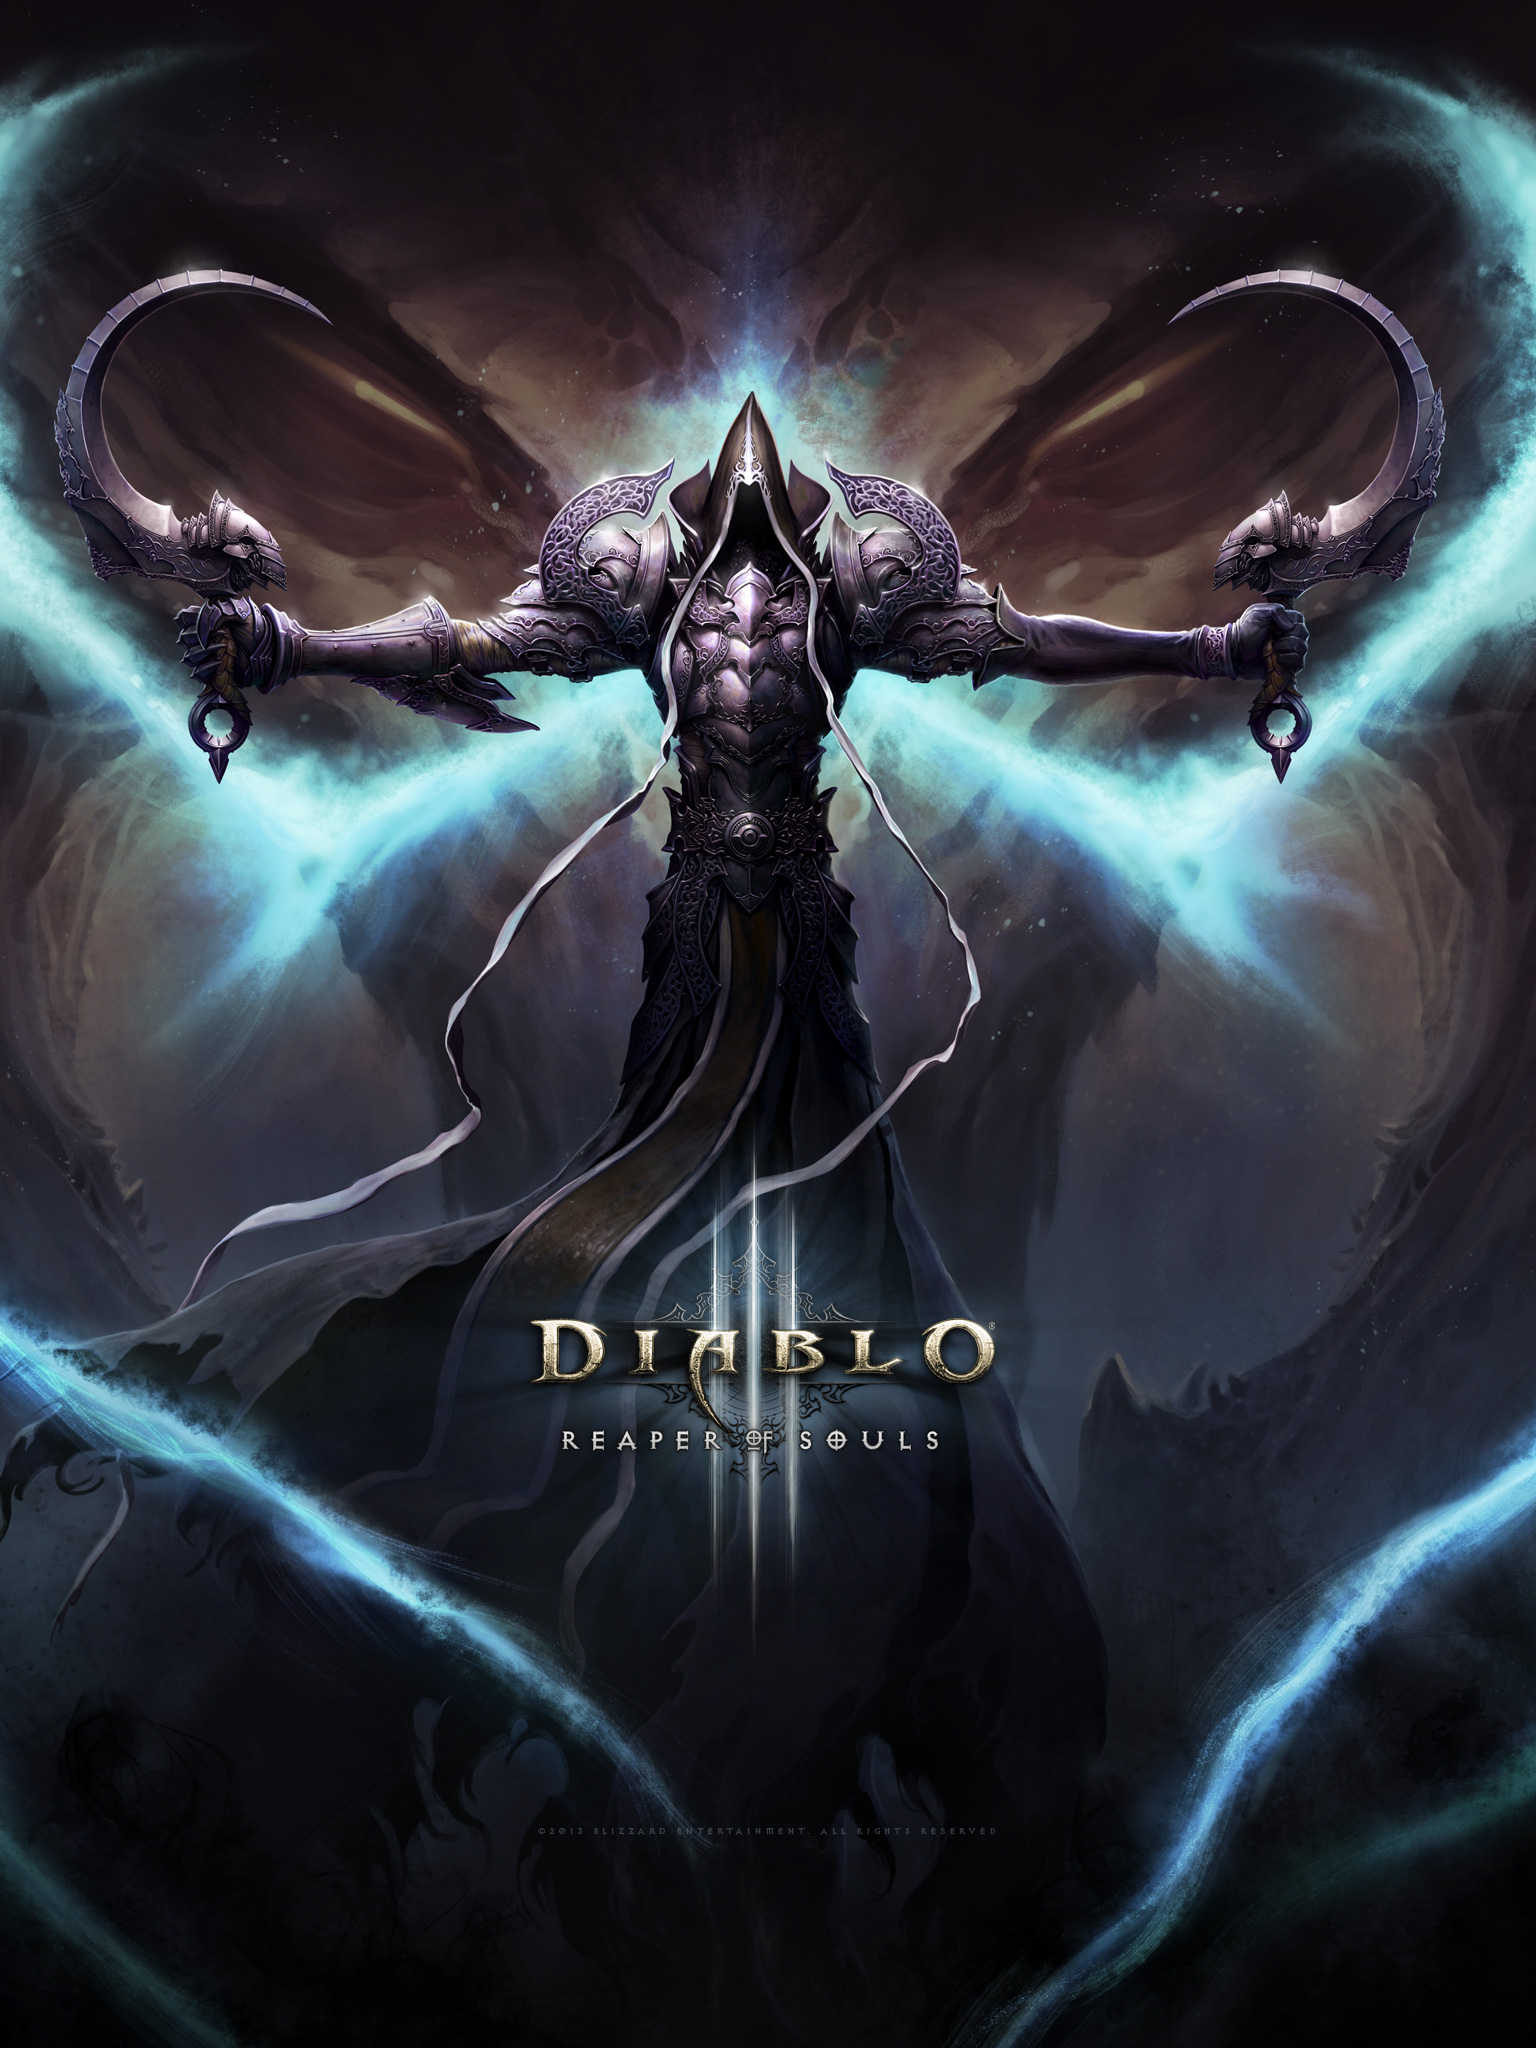 Diablo 3 Expansion, Reaper of Souls news - Mod DB